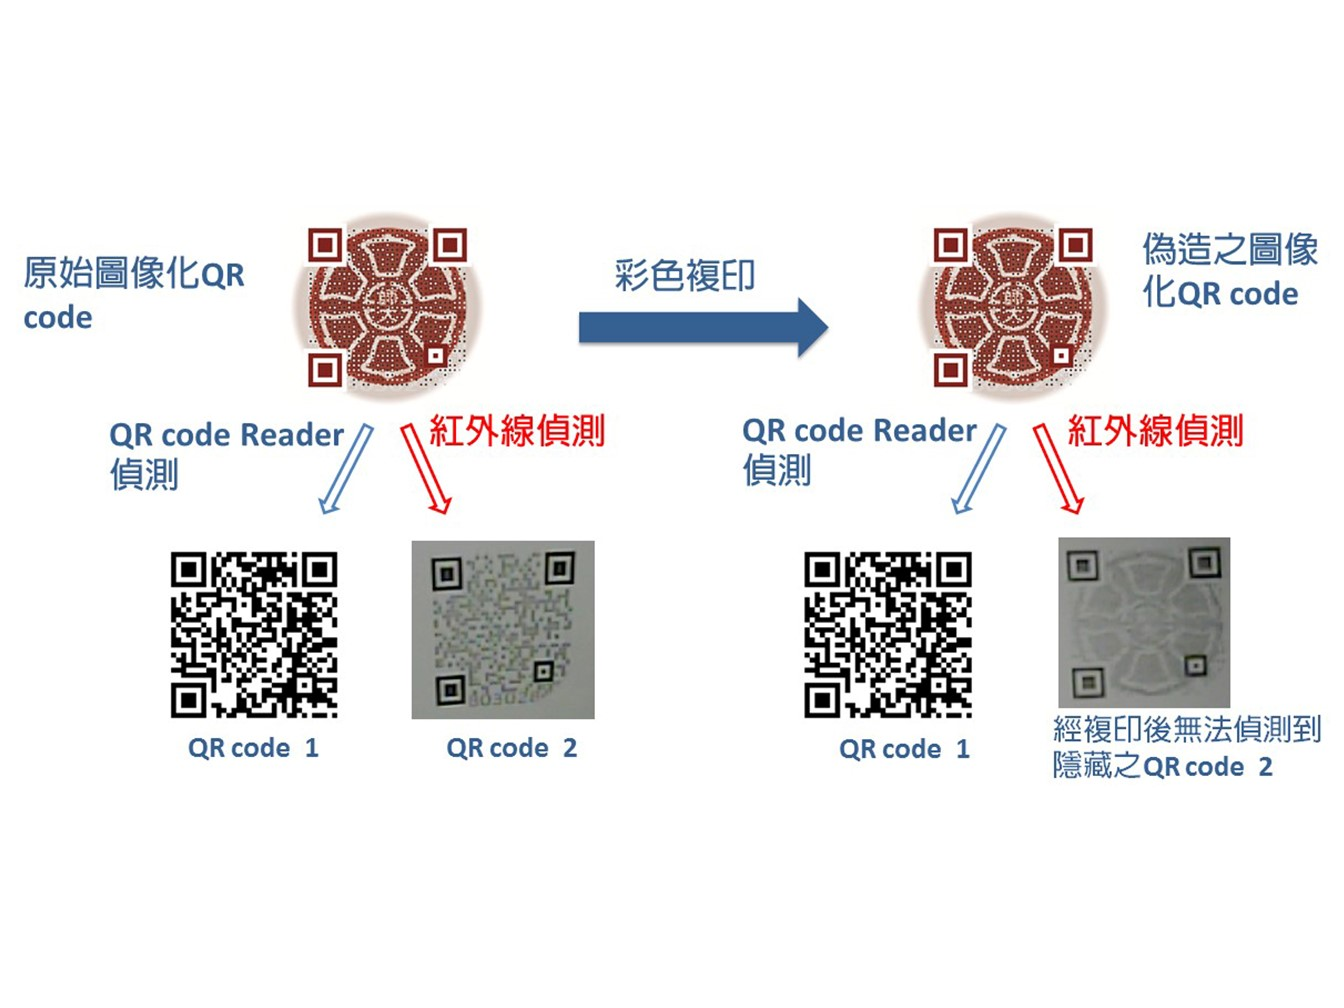 Multiple Anti-counterfeiting FeaturesValue-added Applications for Graphic QR Code